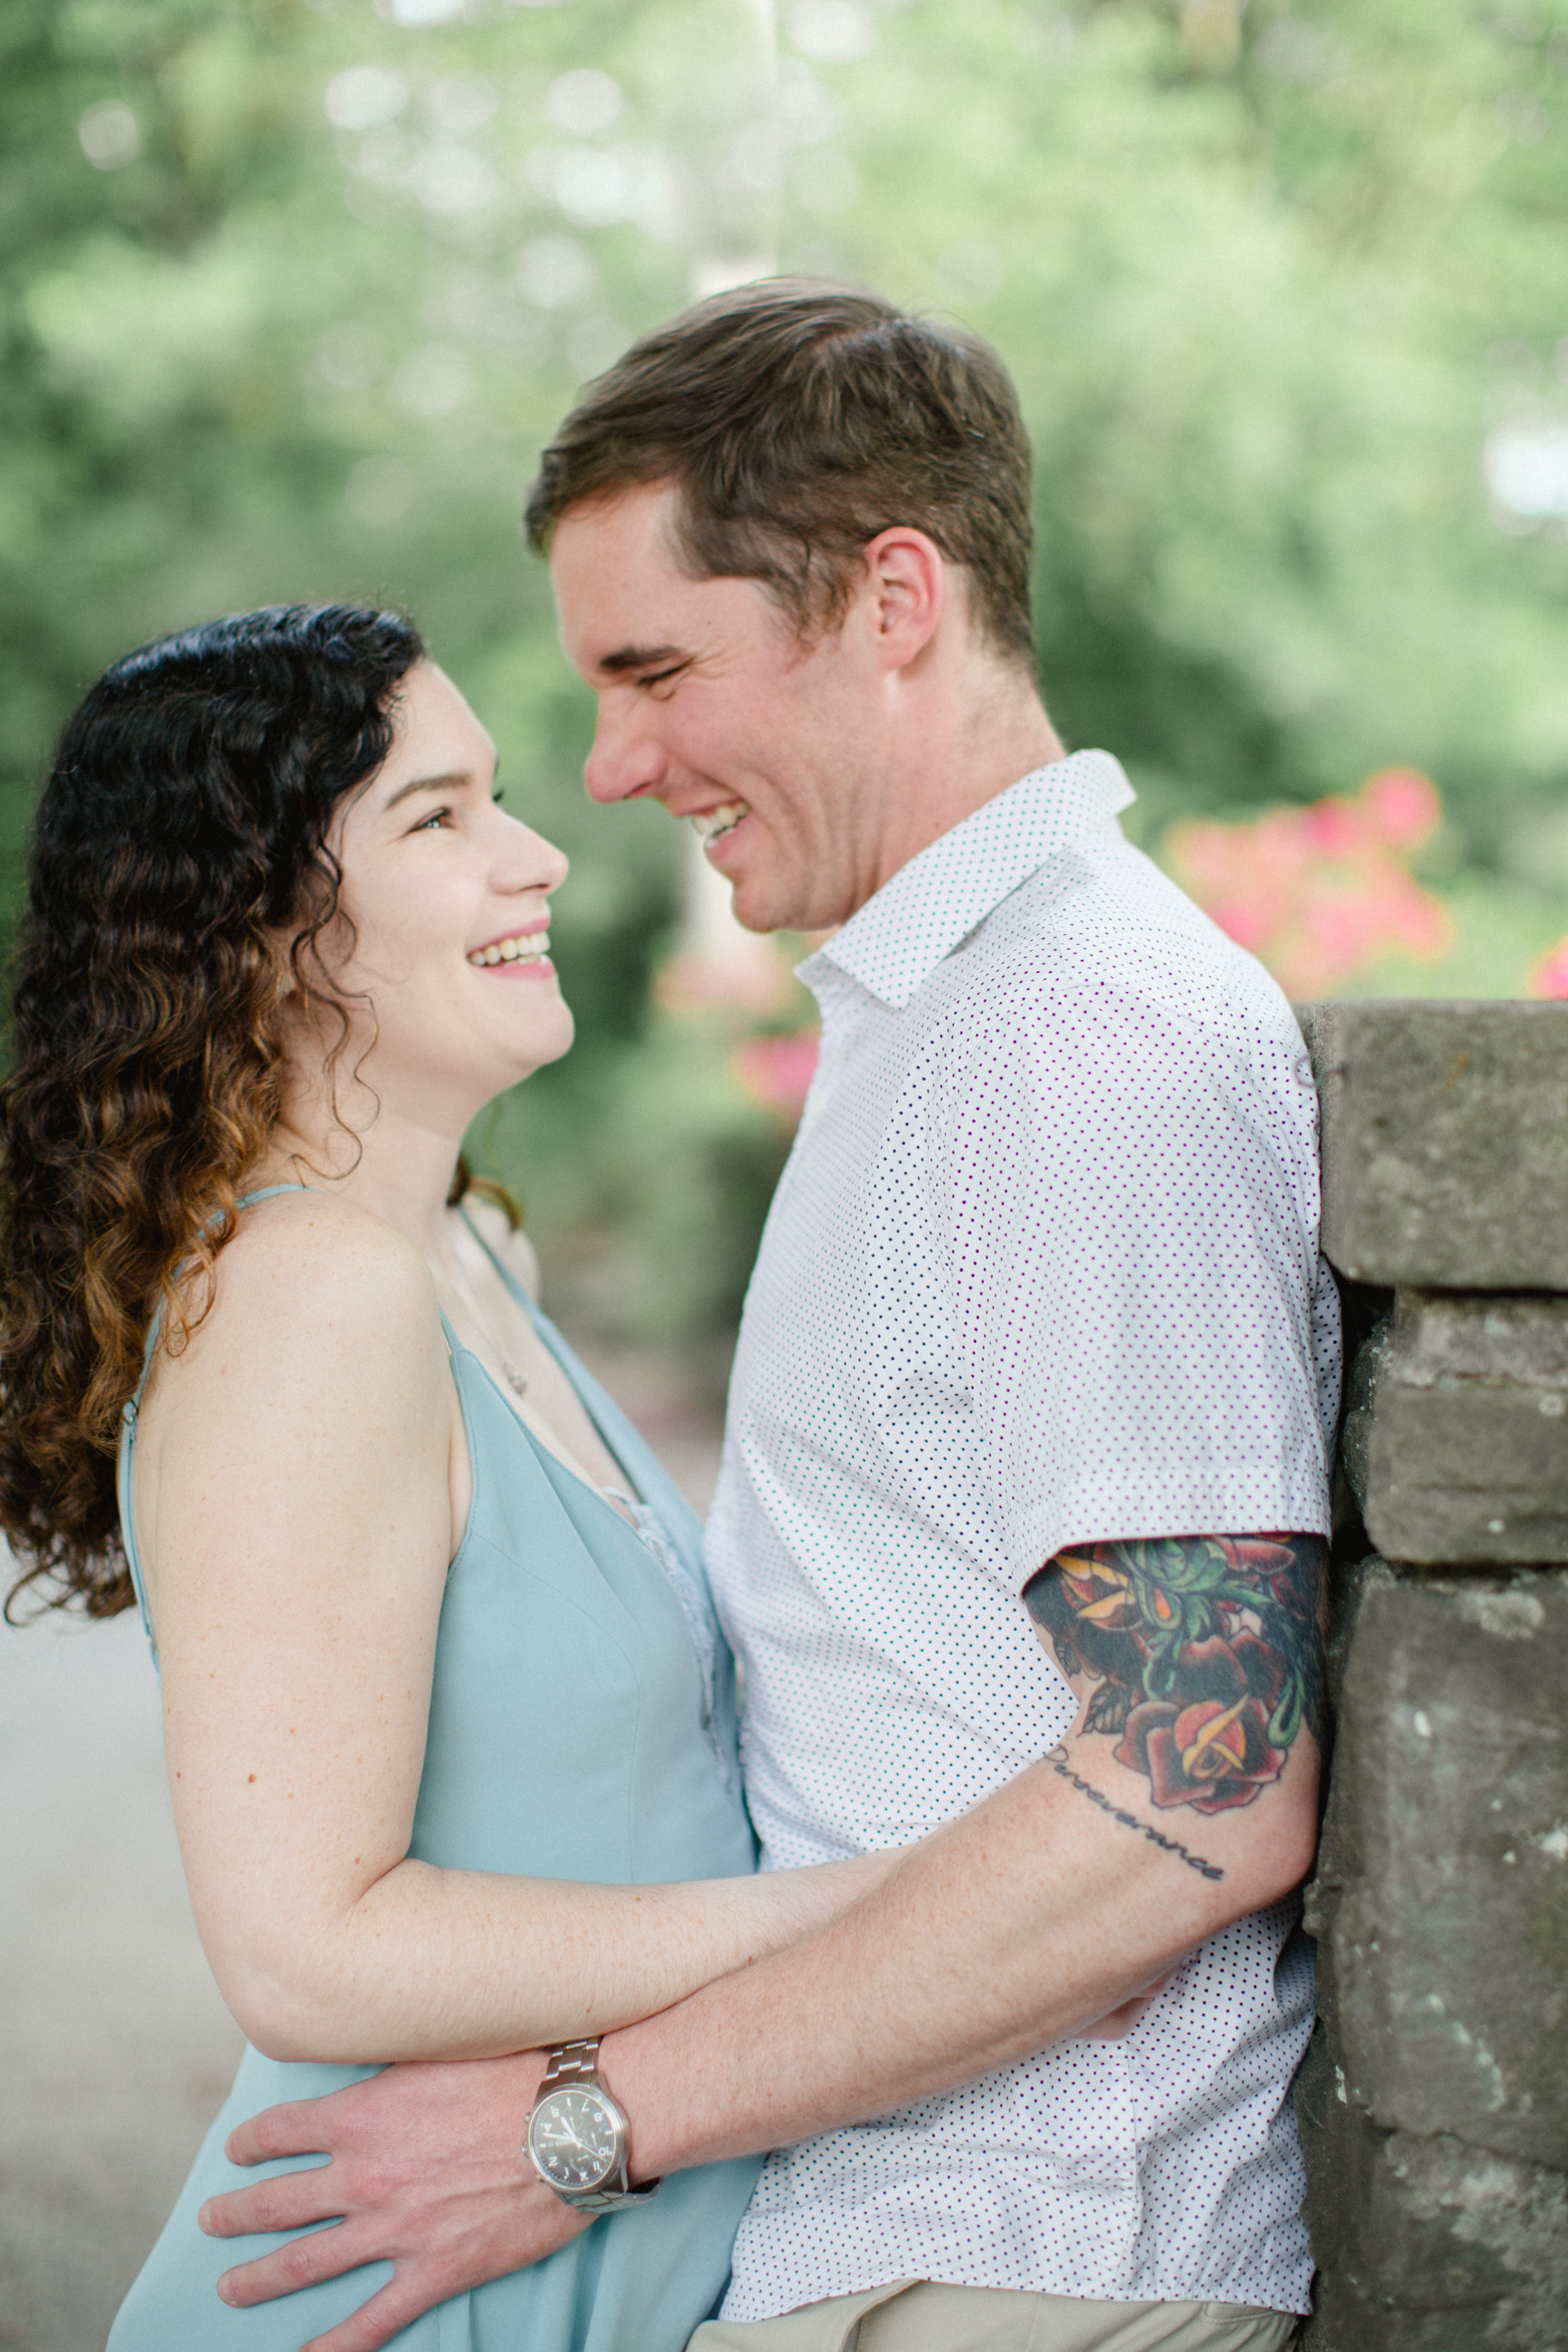 Moscow PA Engagement Session Photos_JDP-33.jpg